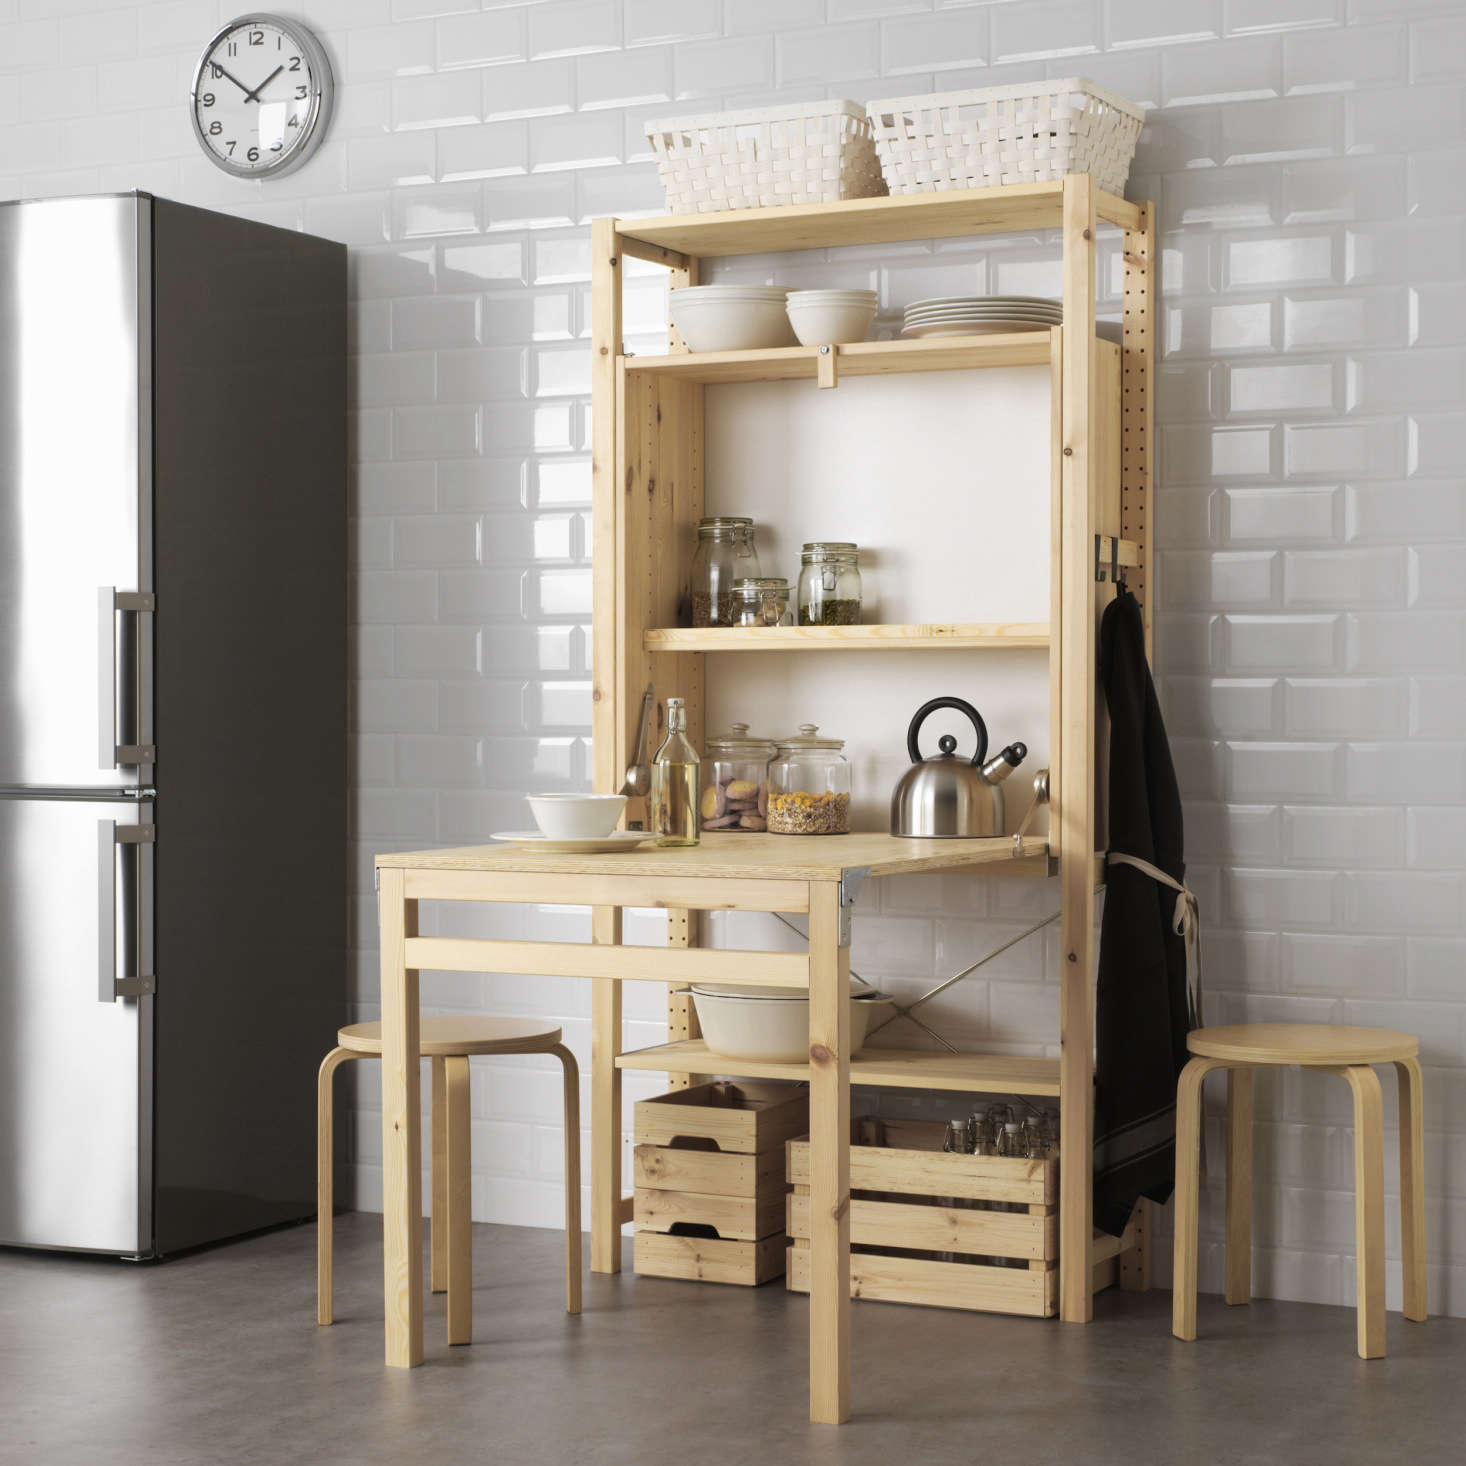 Ikea.de Ivar New To Ikea The Cool Foldable Table Every Small Kitchen Needs